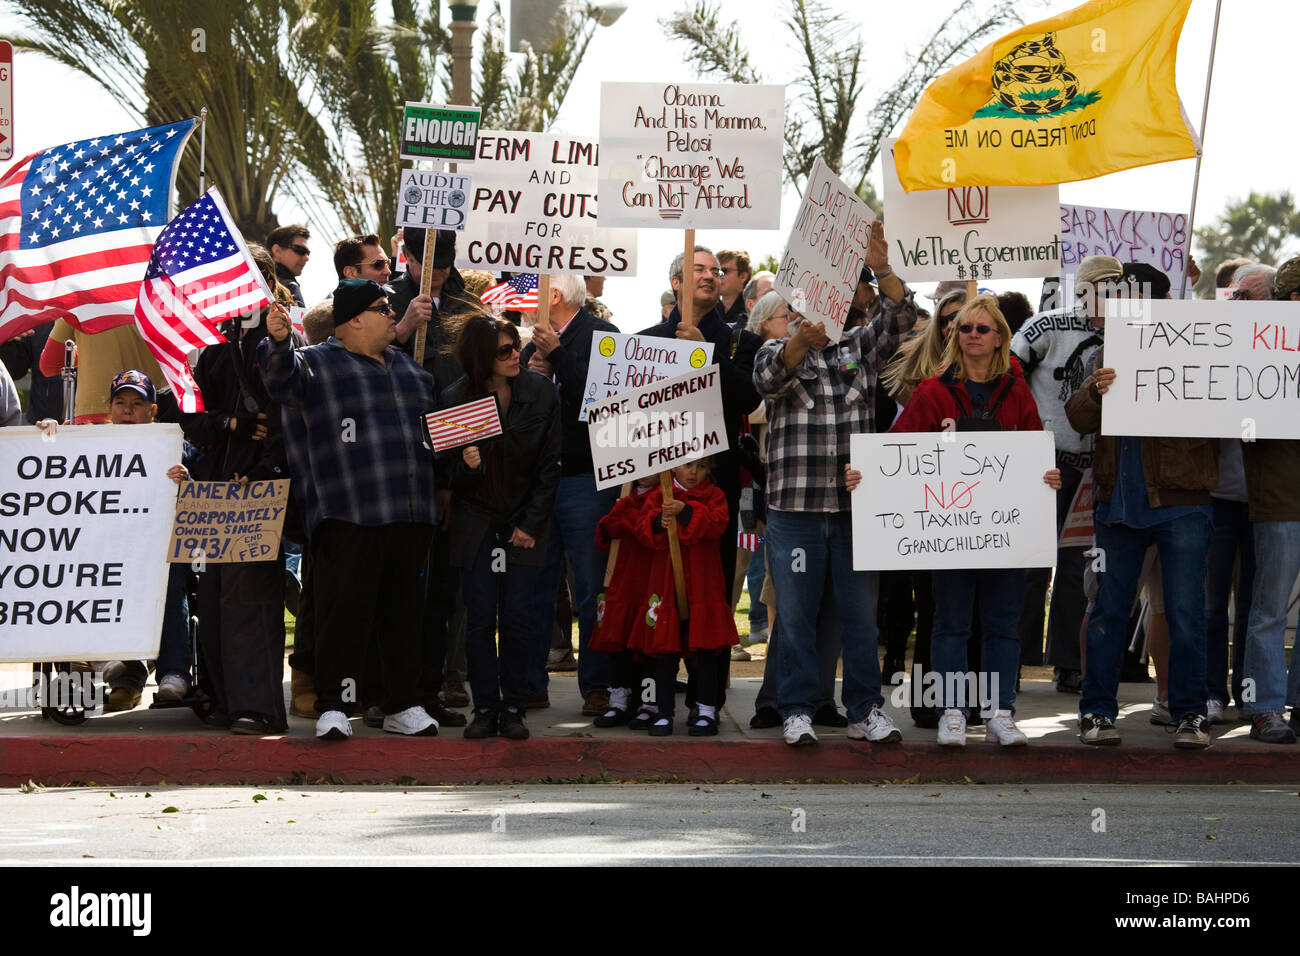 Tax Day Tea Party 4 15 2009 anti tax protest Santa Monica Los Angeles County California United States of America - Stock Image